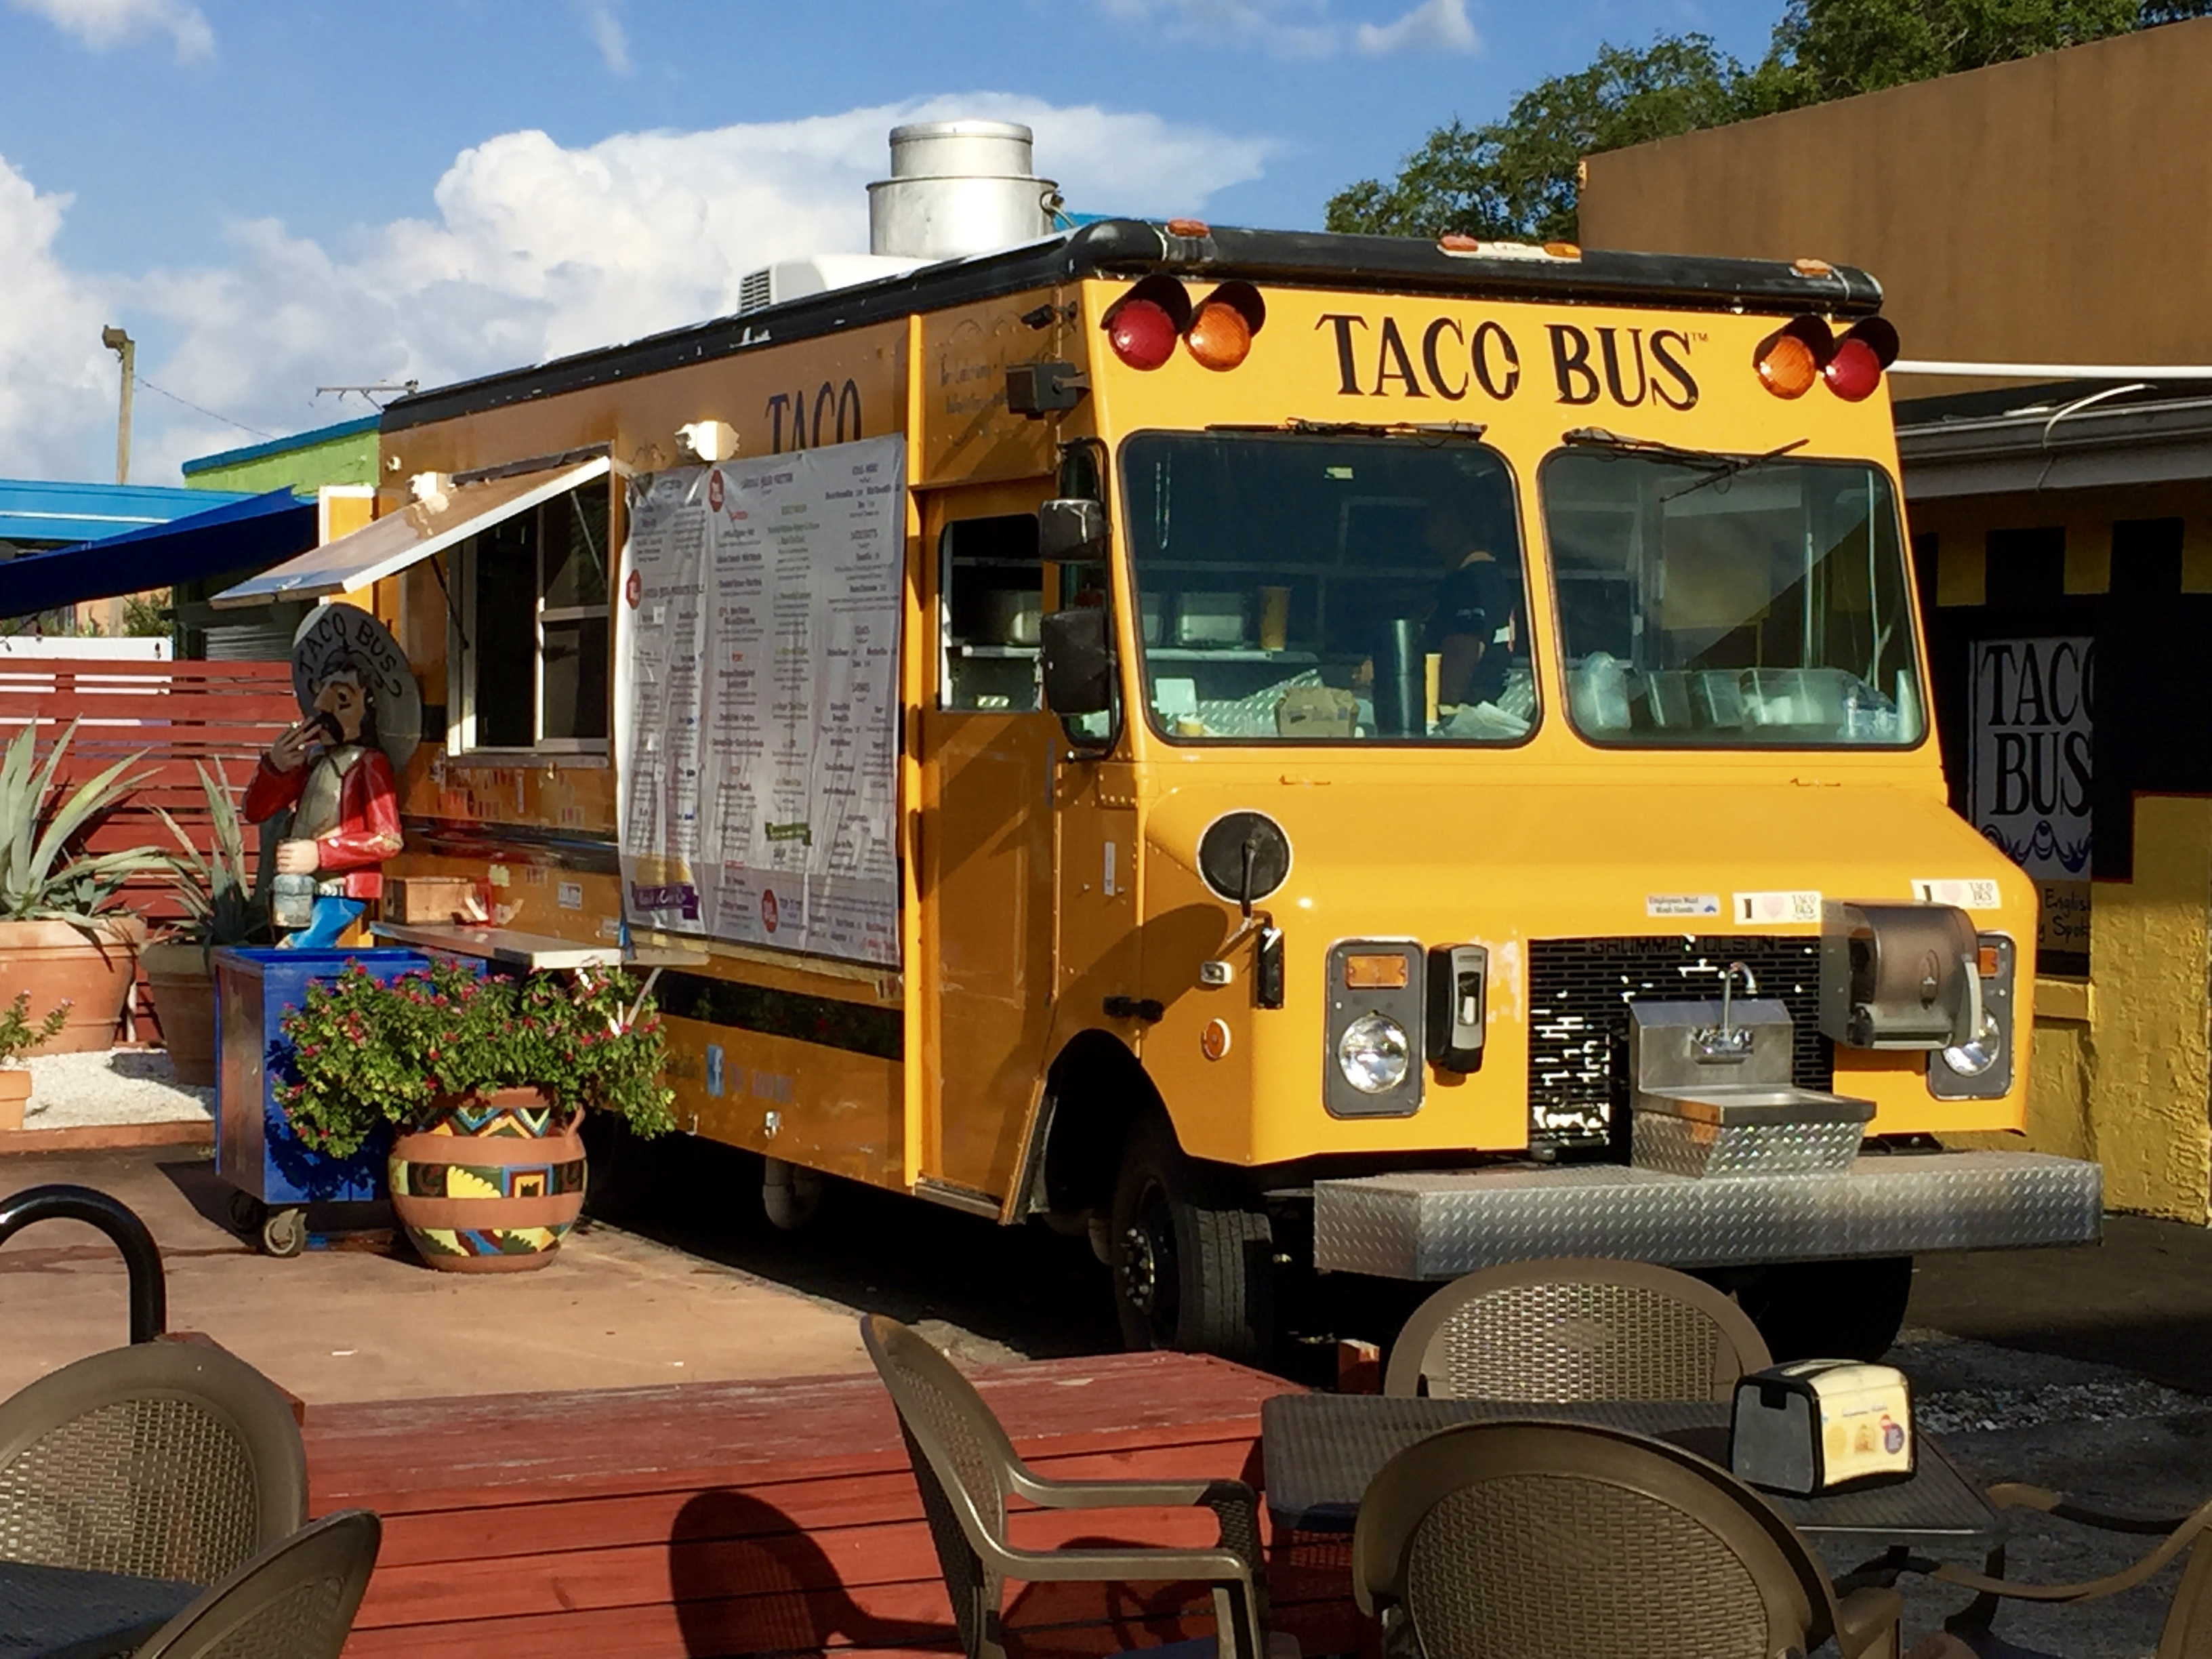 Taco Bus in St. Pete, Fl - Top 10 Taco Spots in St. Pete, FL